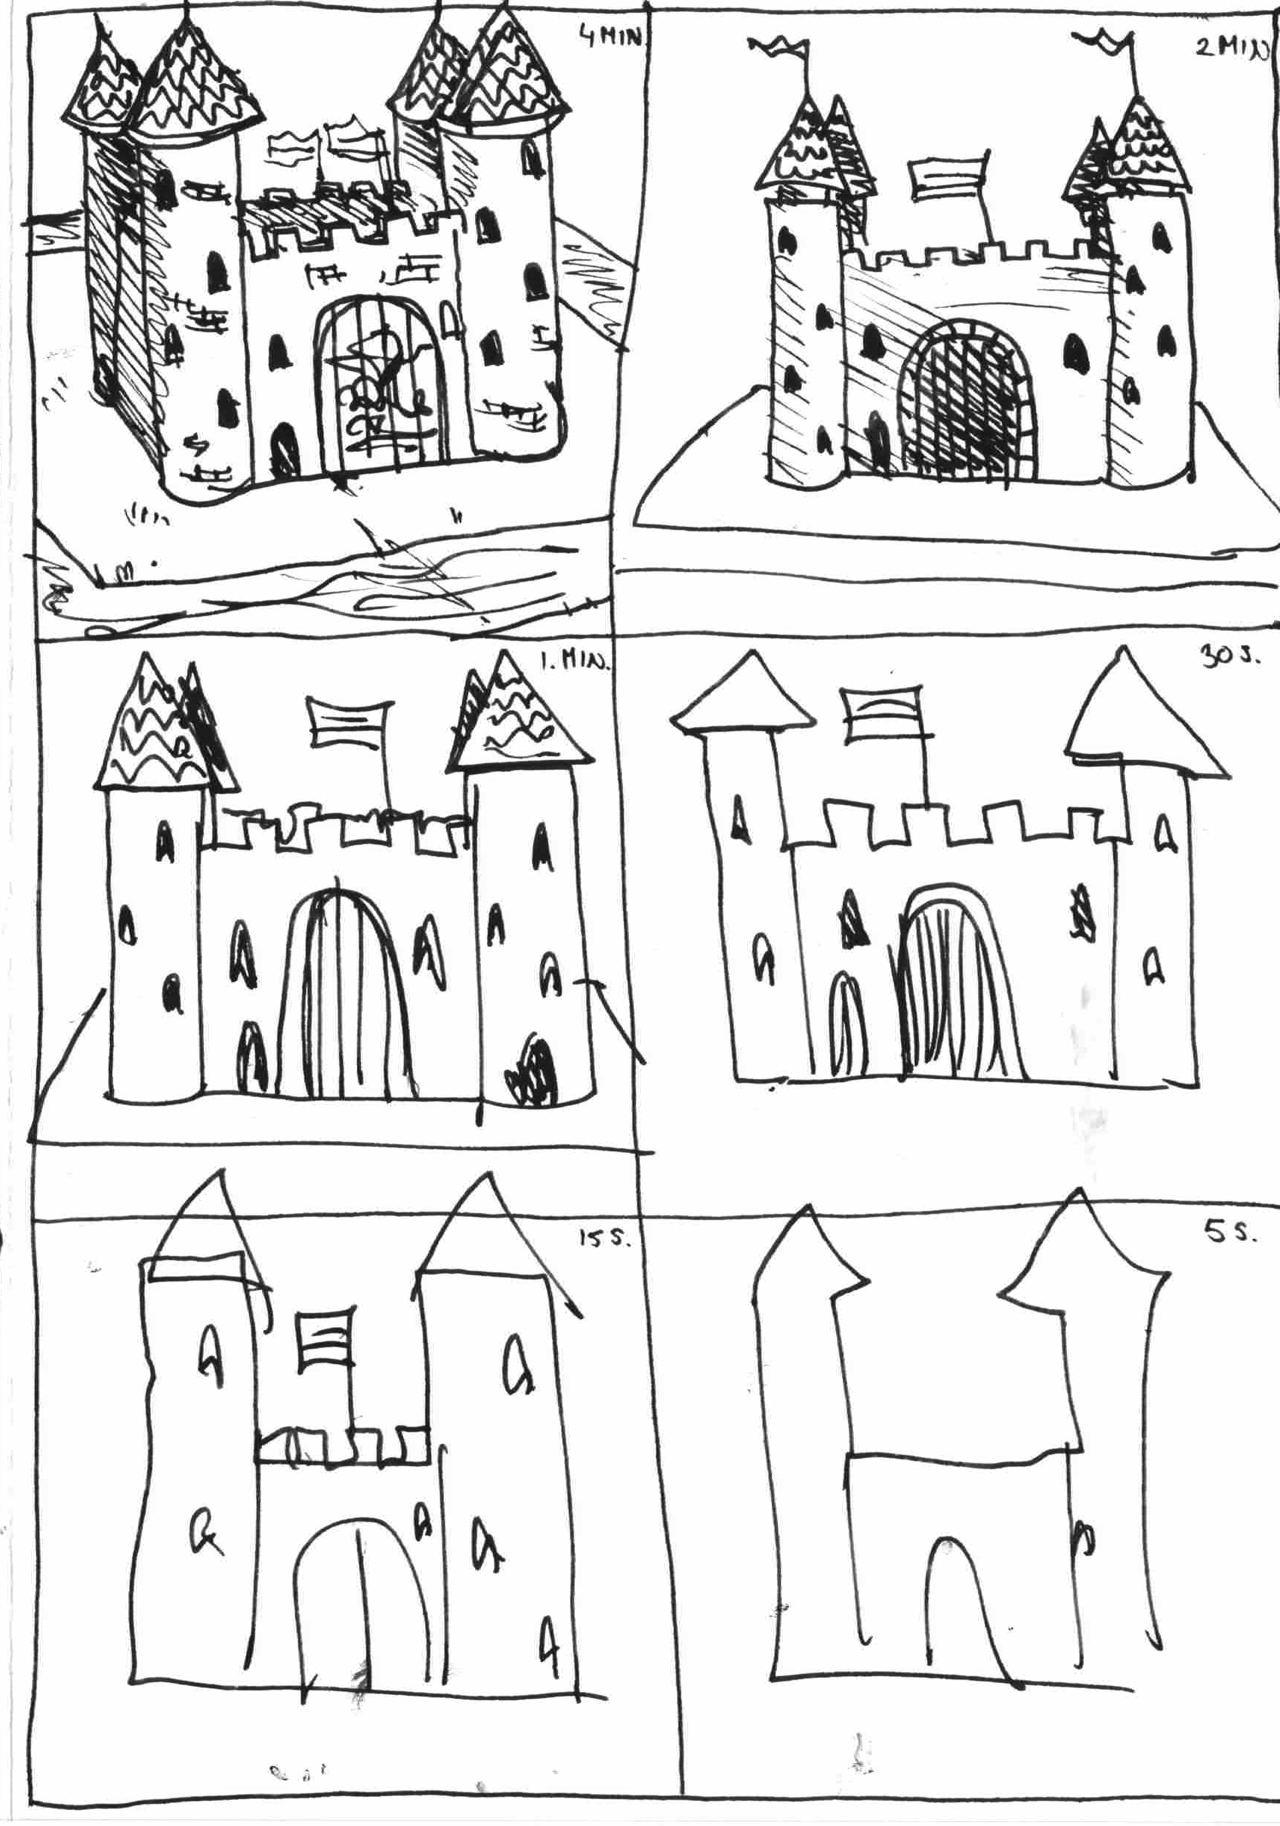 6 drawings of a castle